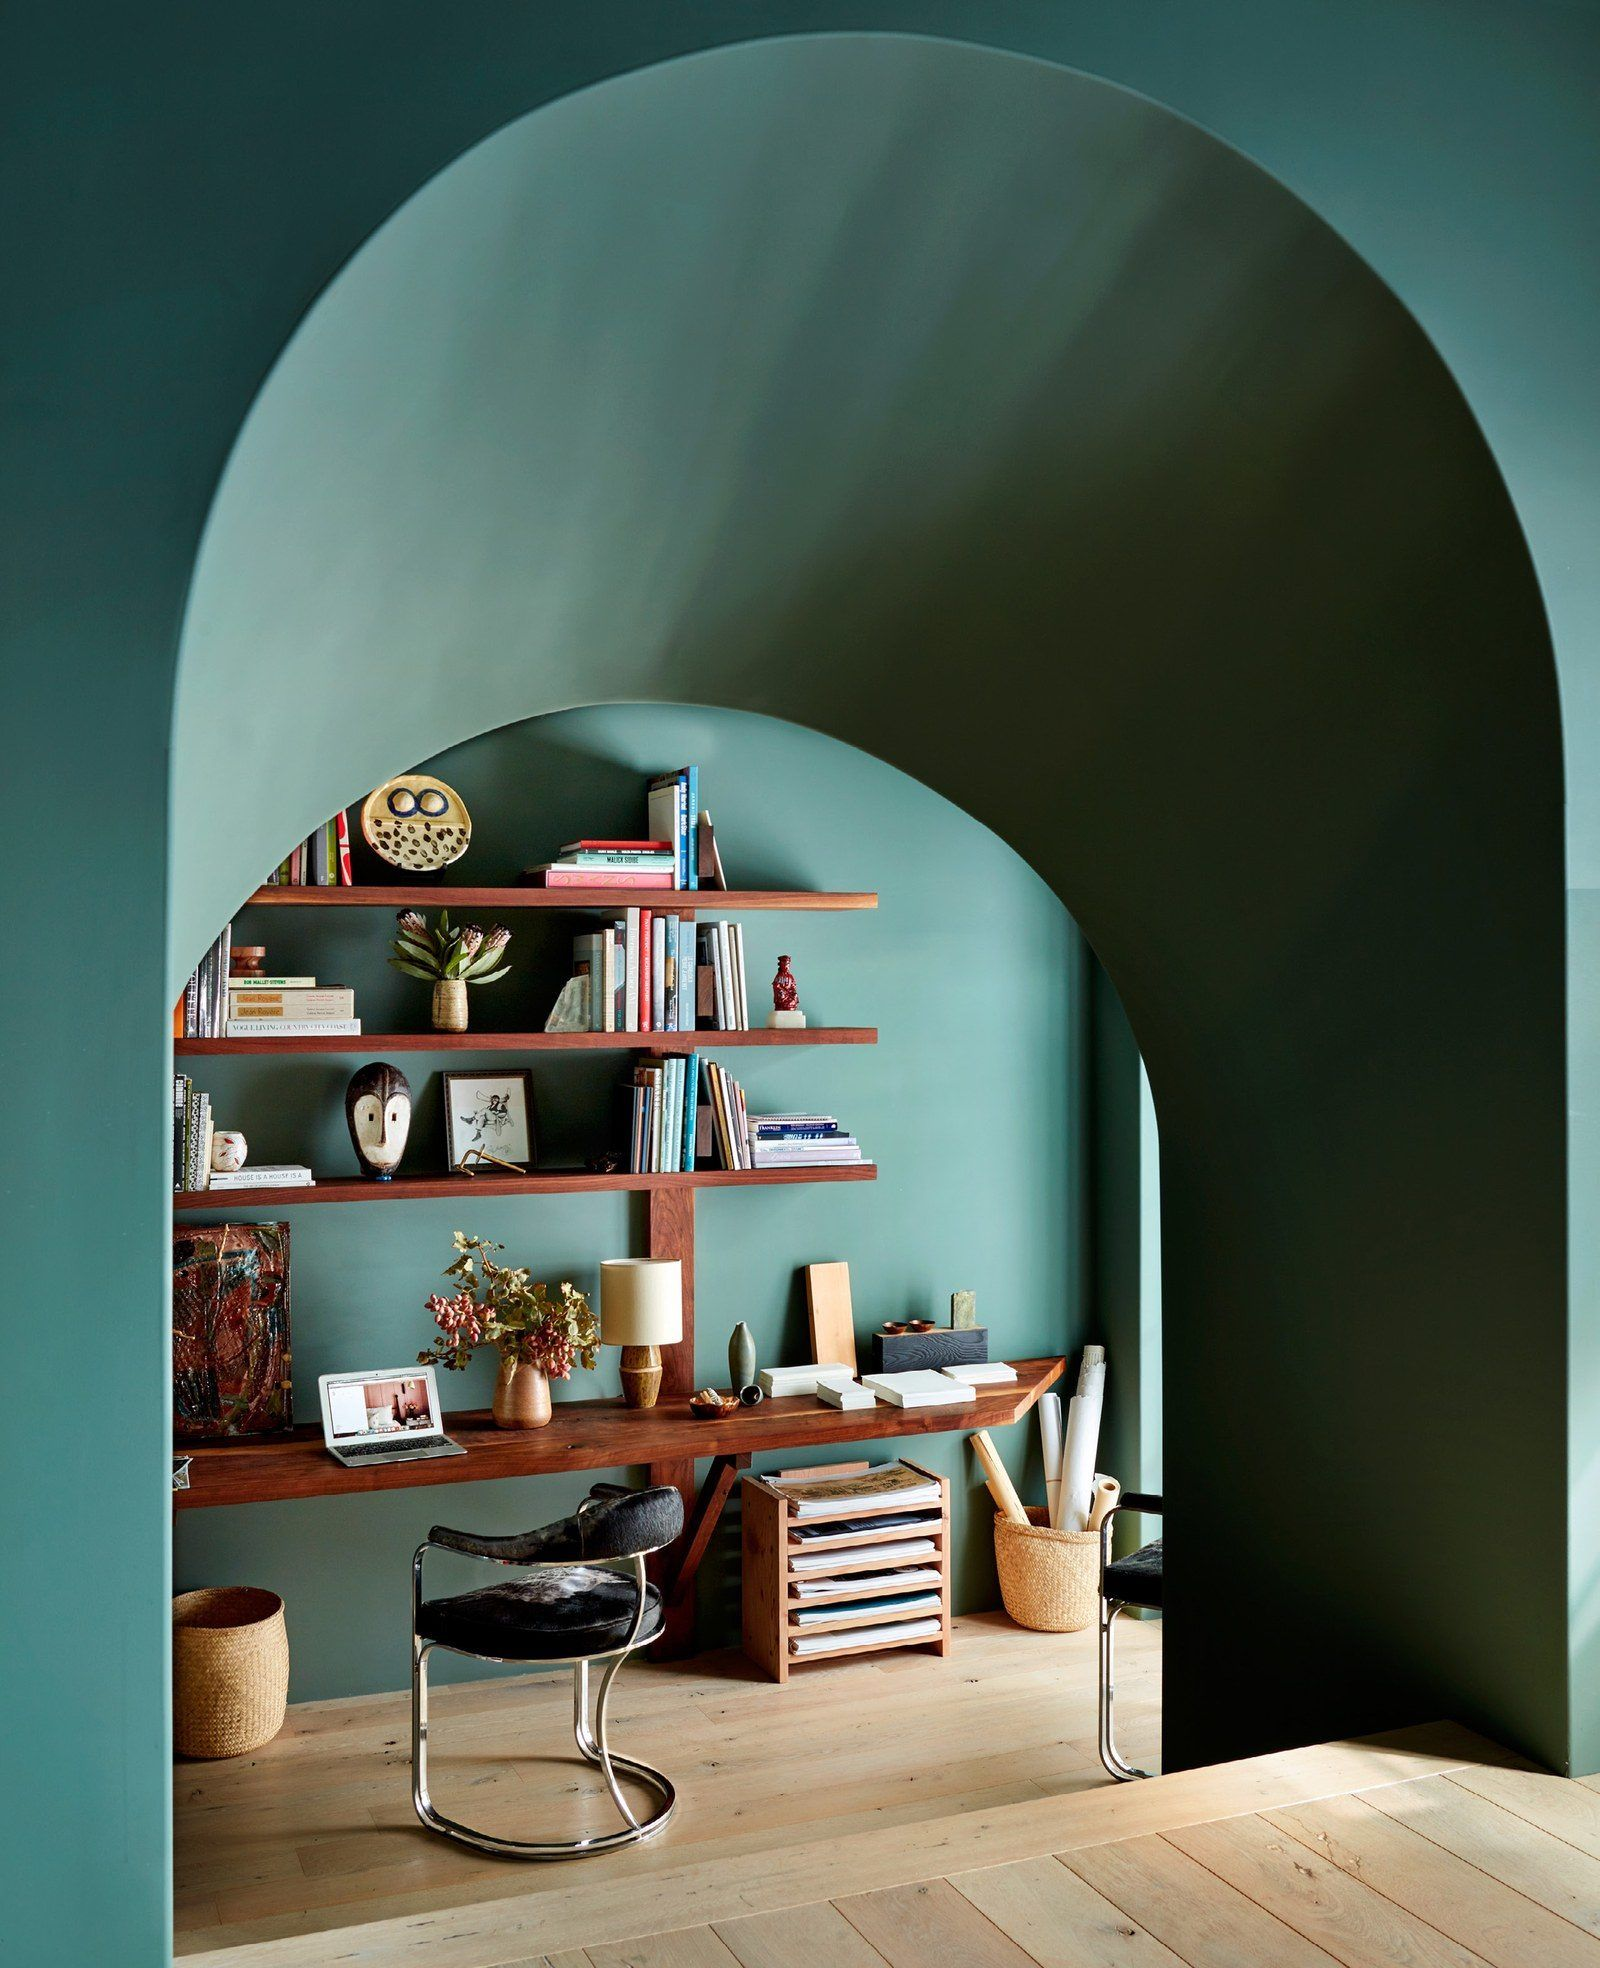 Color Curation Sacramento Green The Shade You Ll Be Seeing Everywhere Home Top Design Trends Architectural Digest